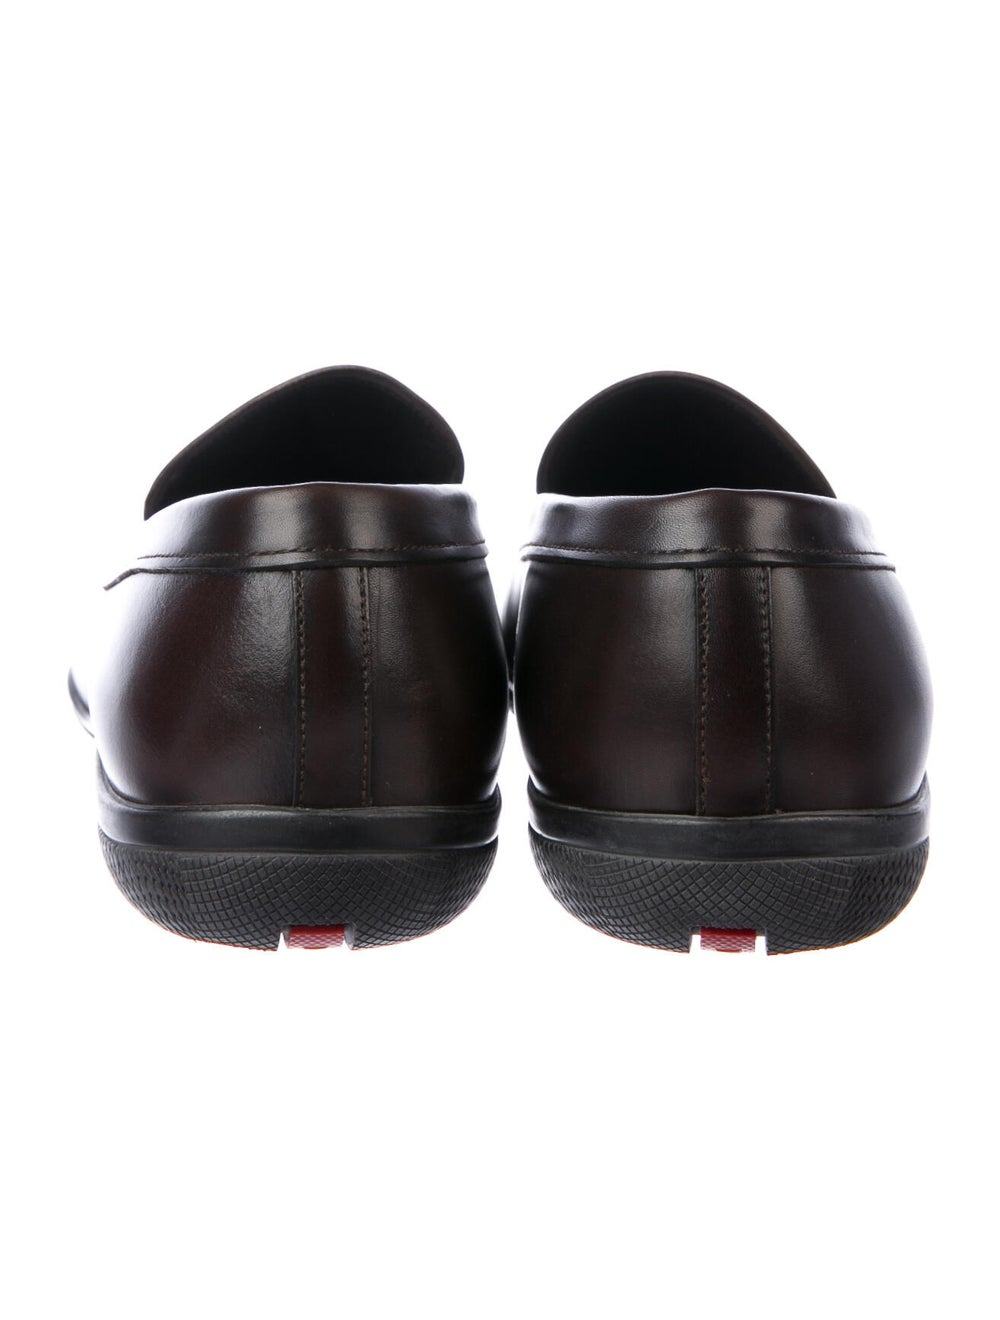 Prada Sport Leather Loafers Brown - image 4